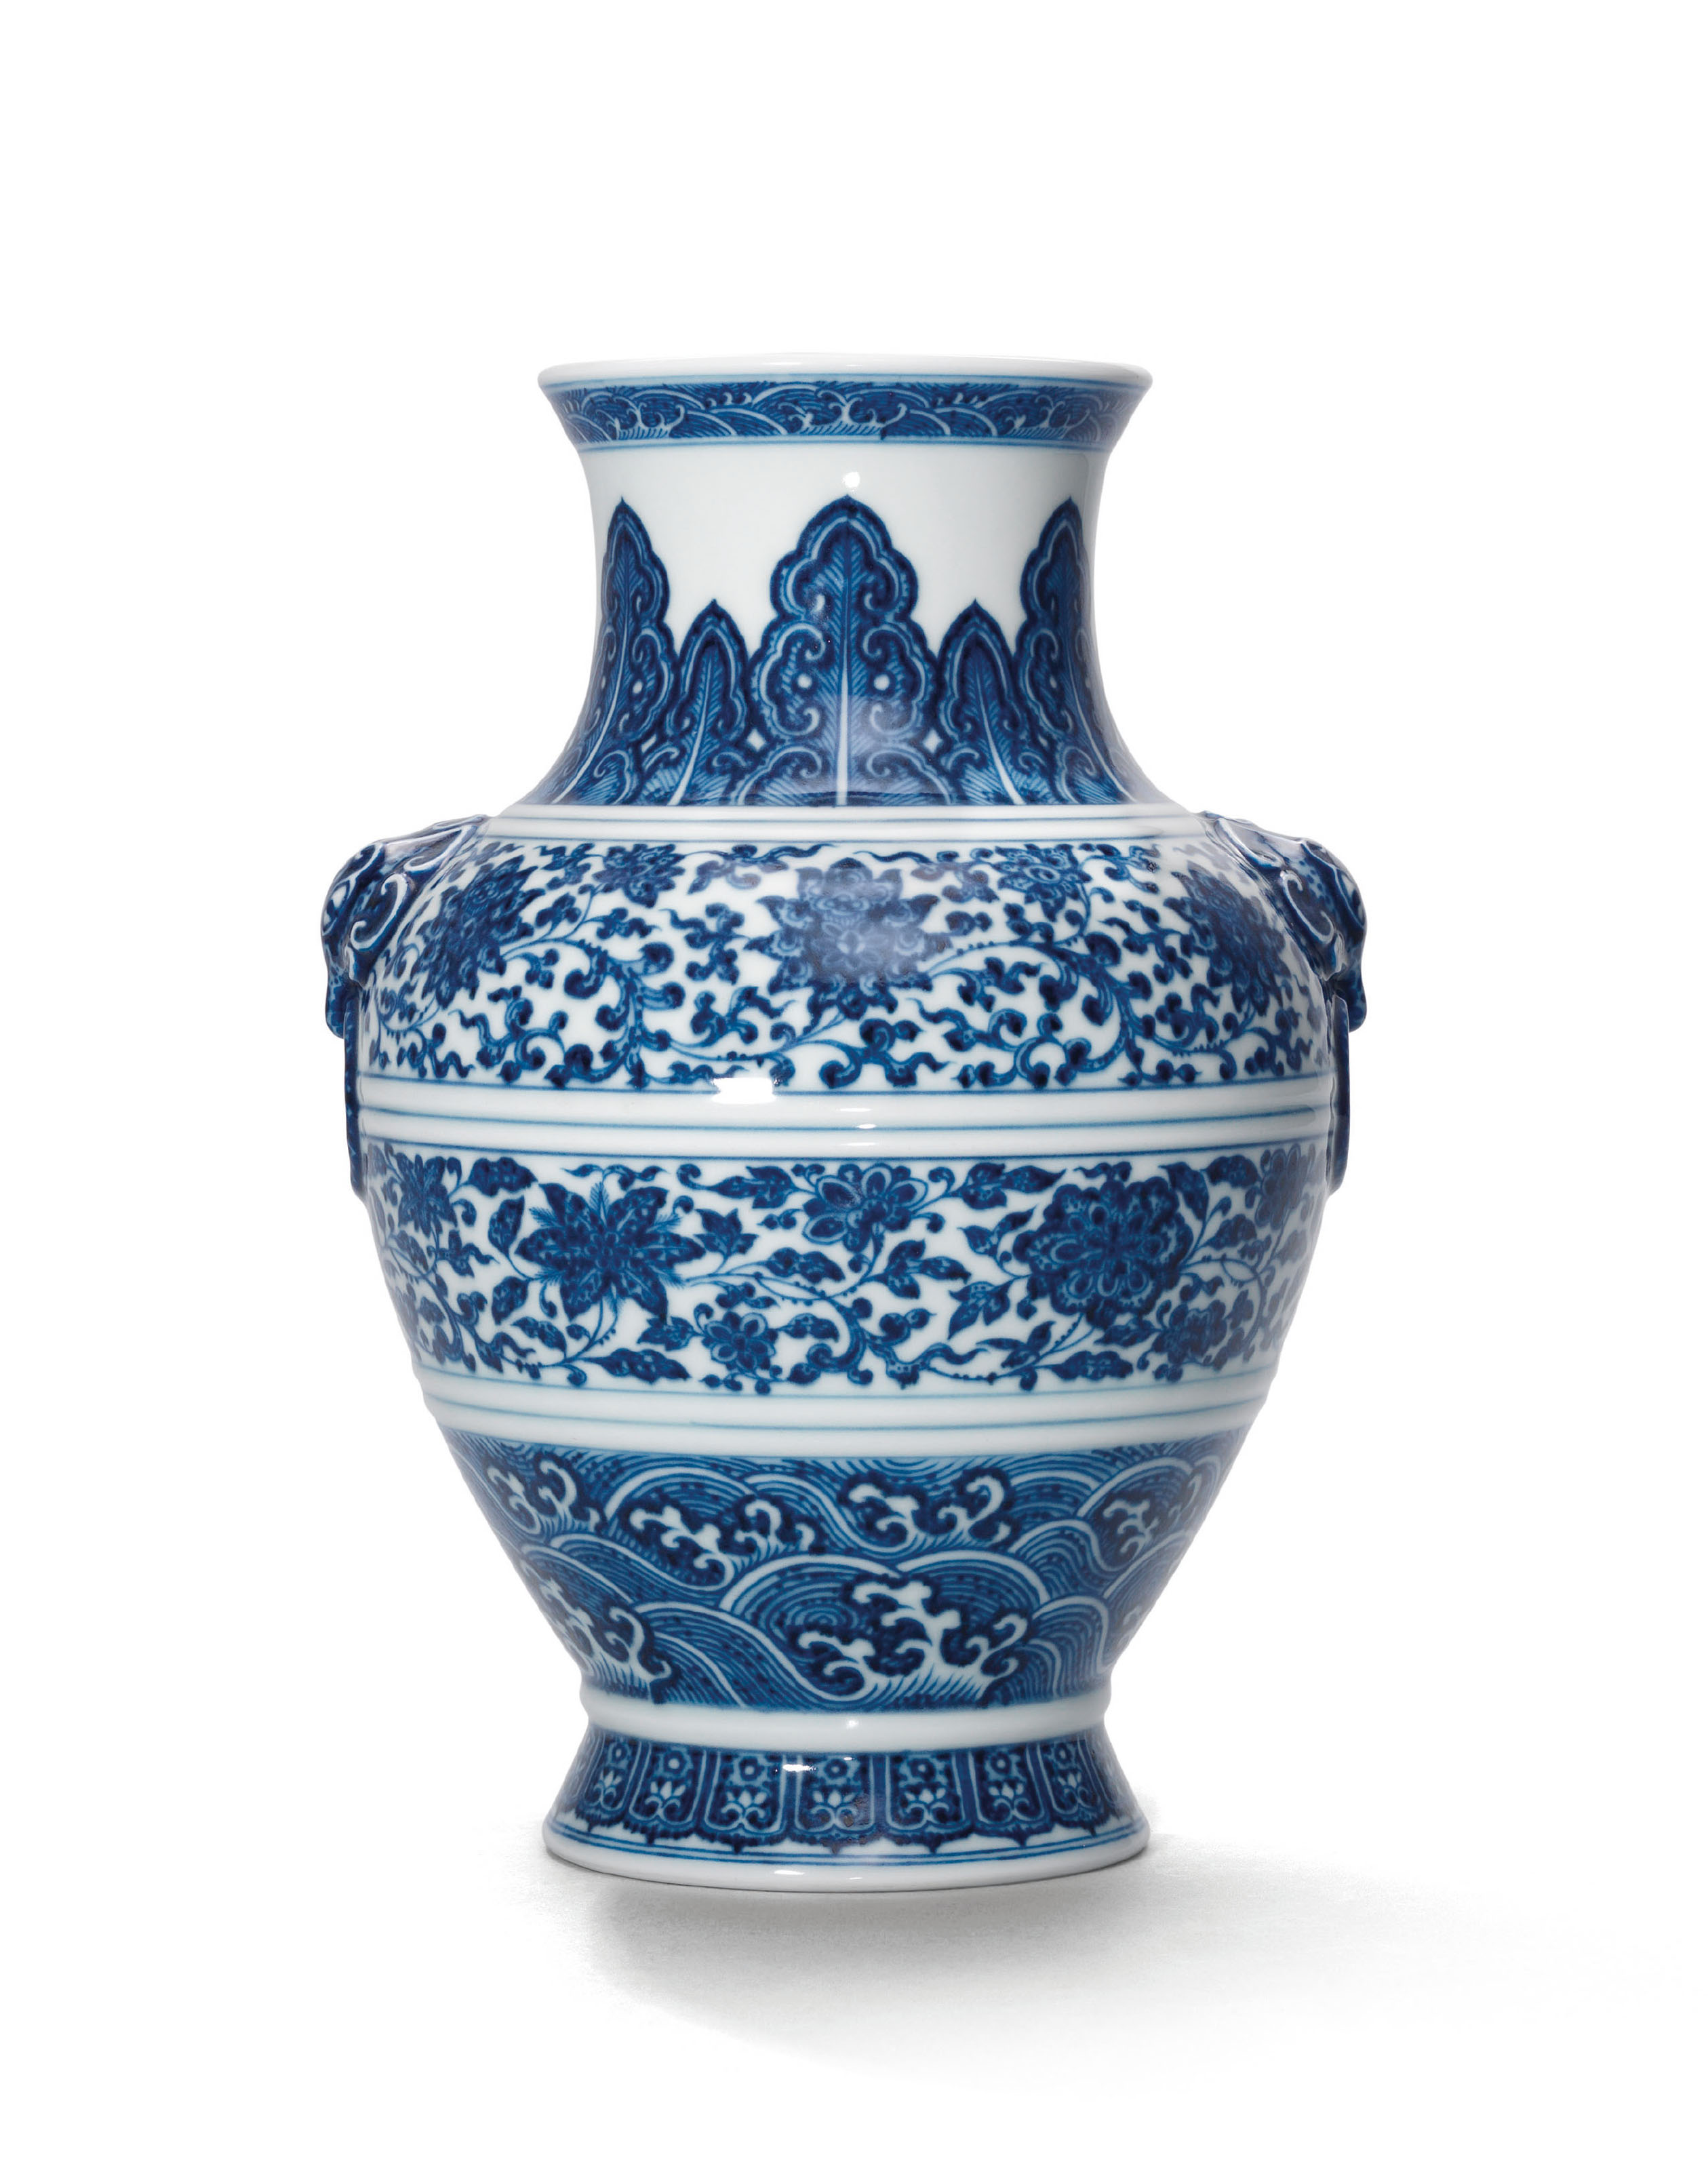 A BLUE AND WHITE HU-FORM VASE